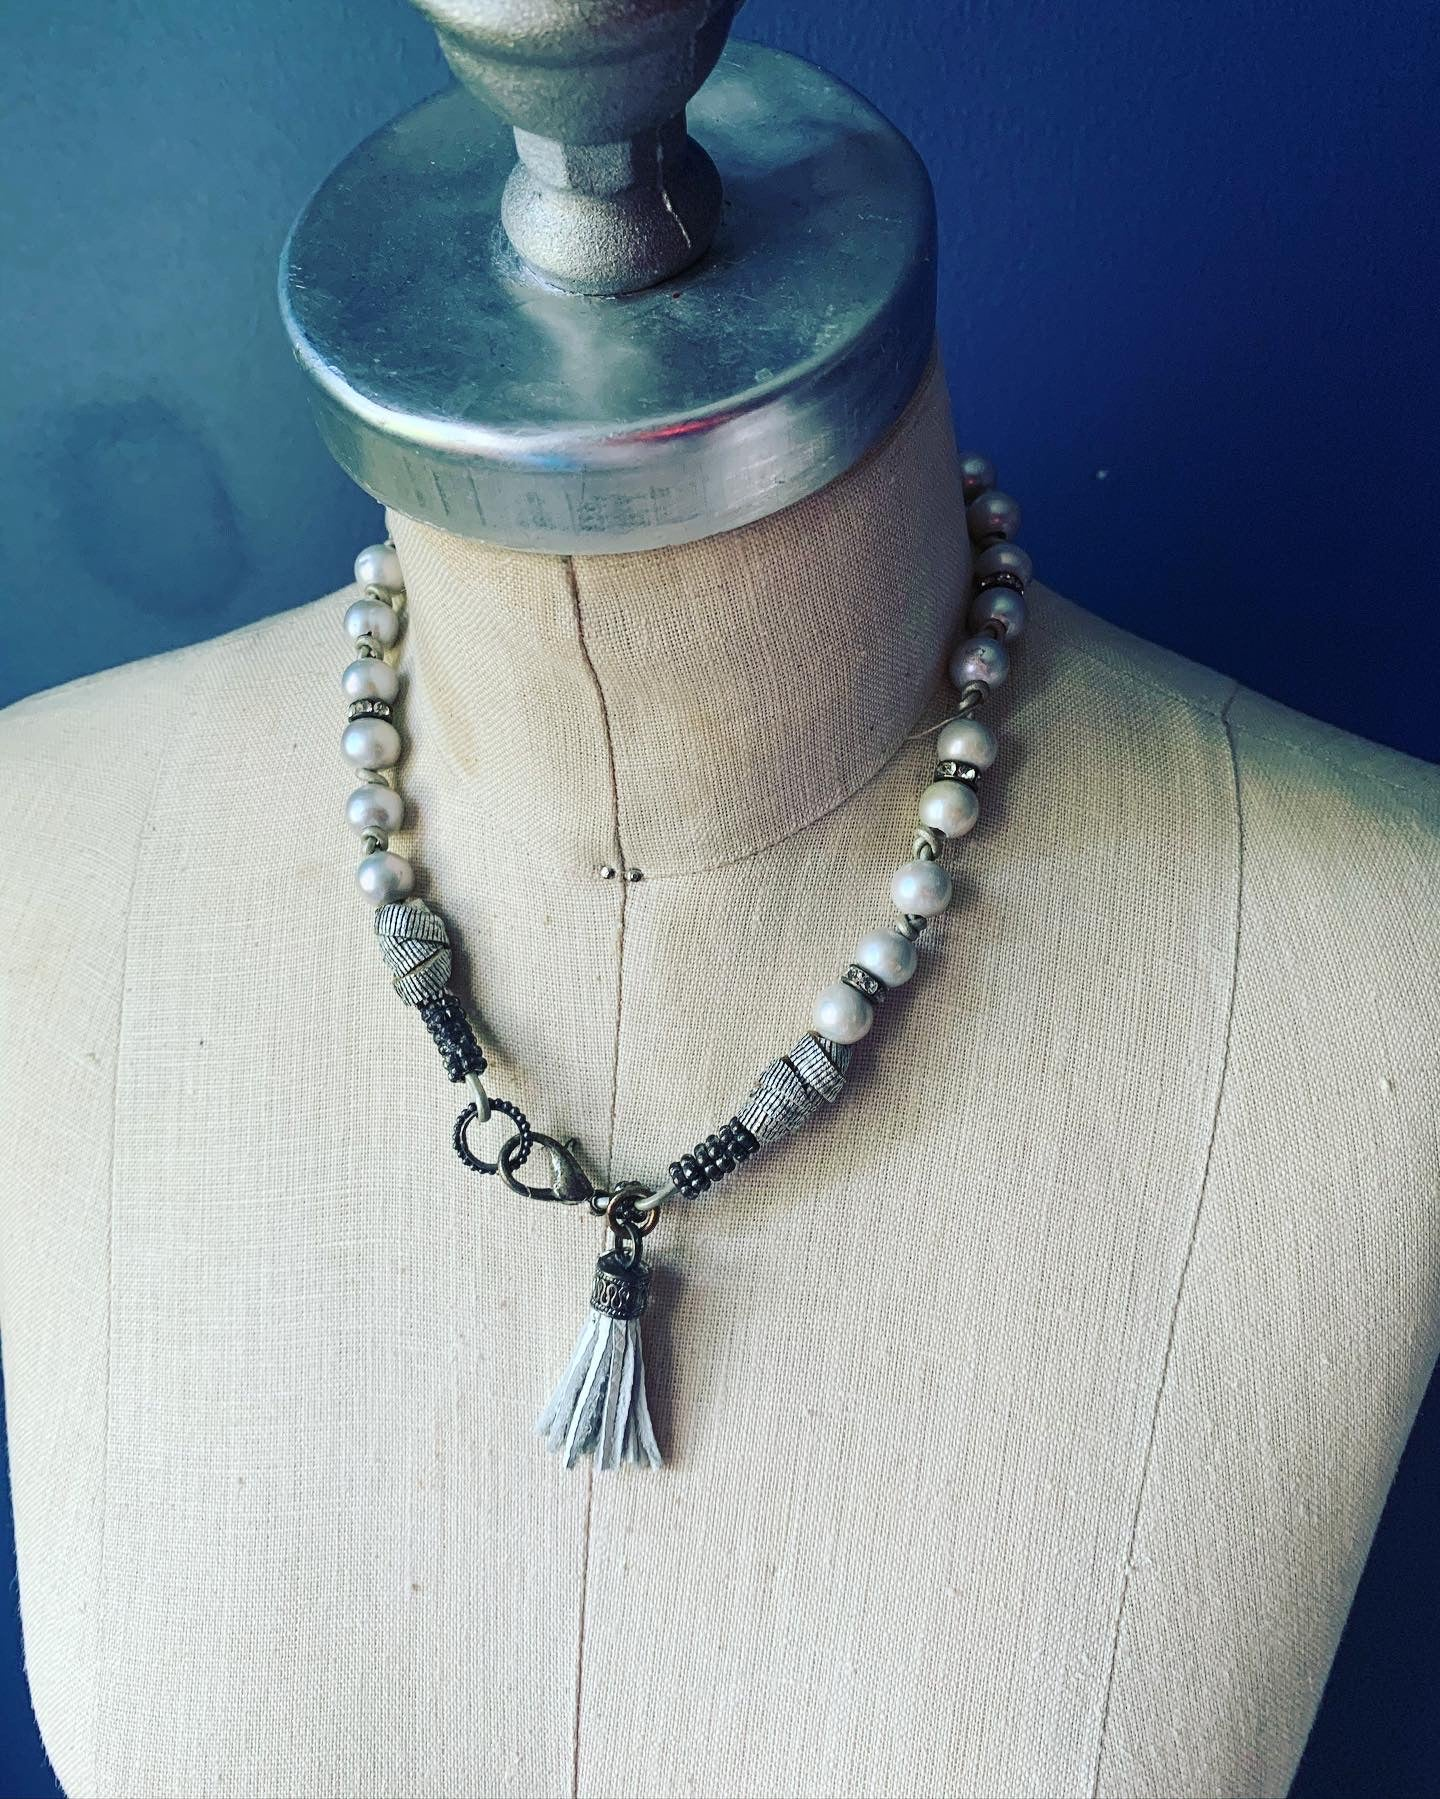 Pearl Necklaces with leather fringe tassels